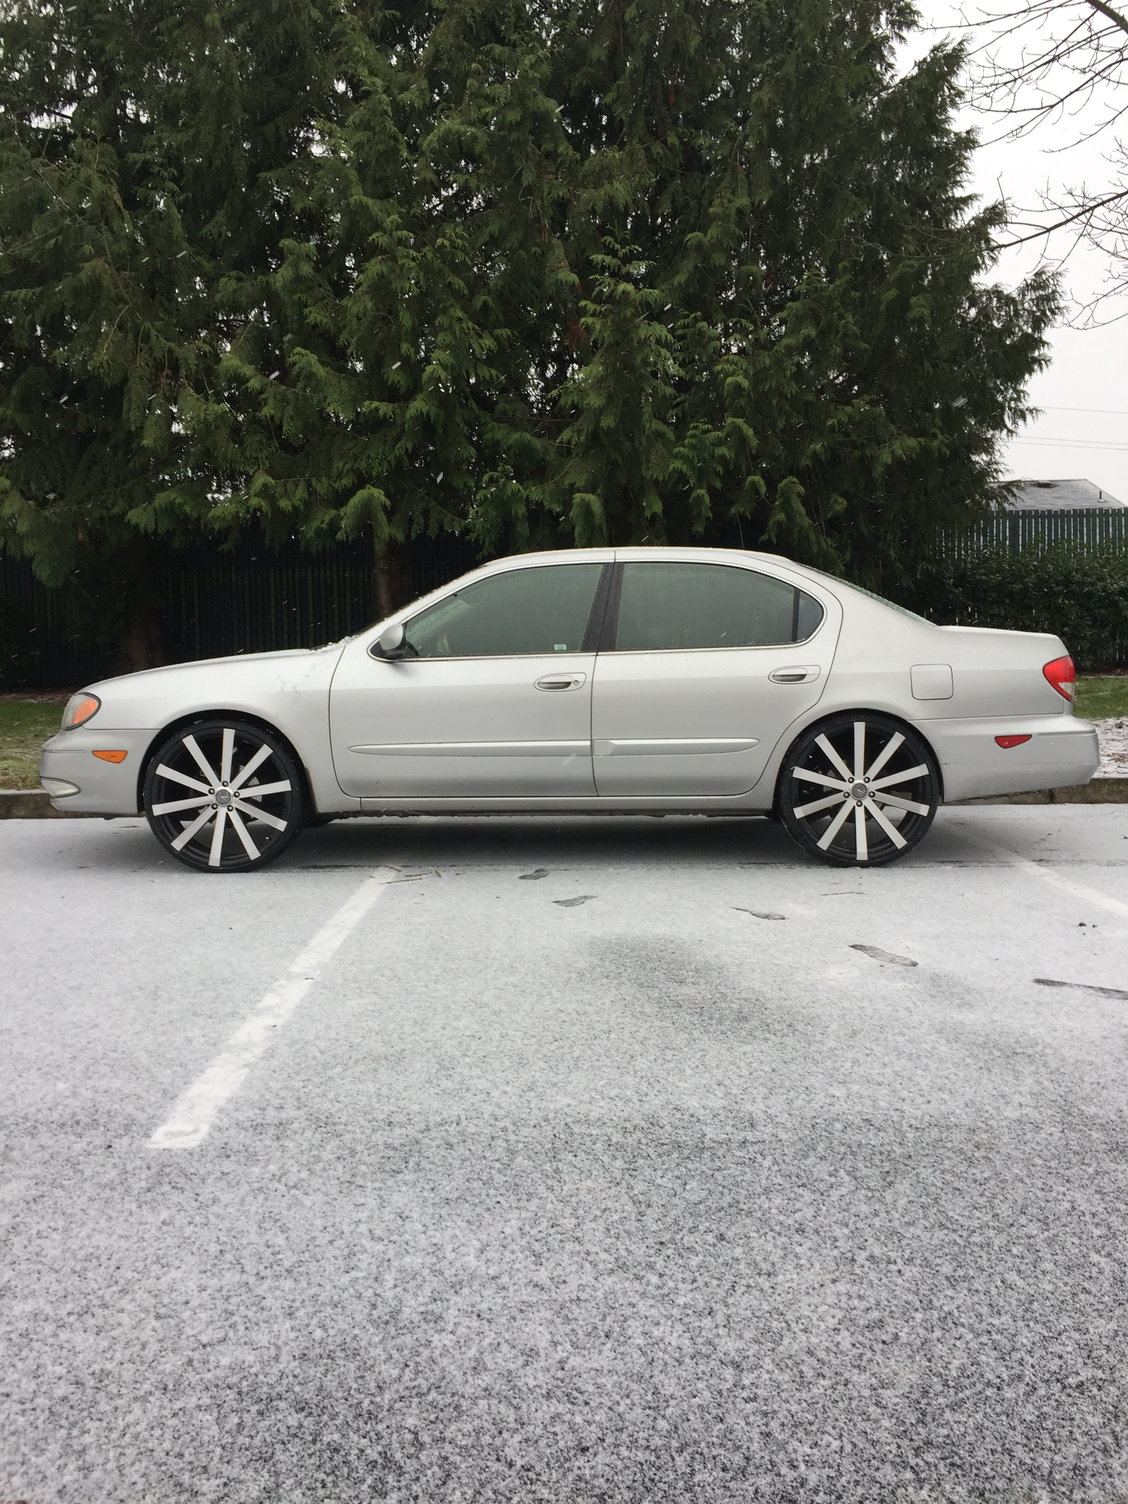 Nissan Maxima On 22s : nissan, maxima, Ordered, 22's., Clearance, Questions, Maxima, Forums